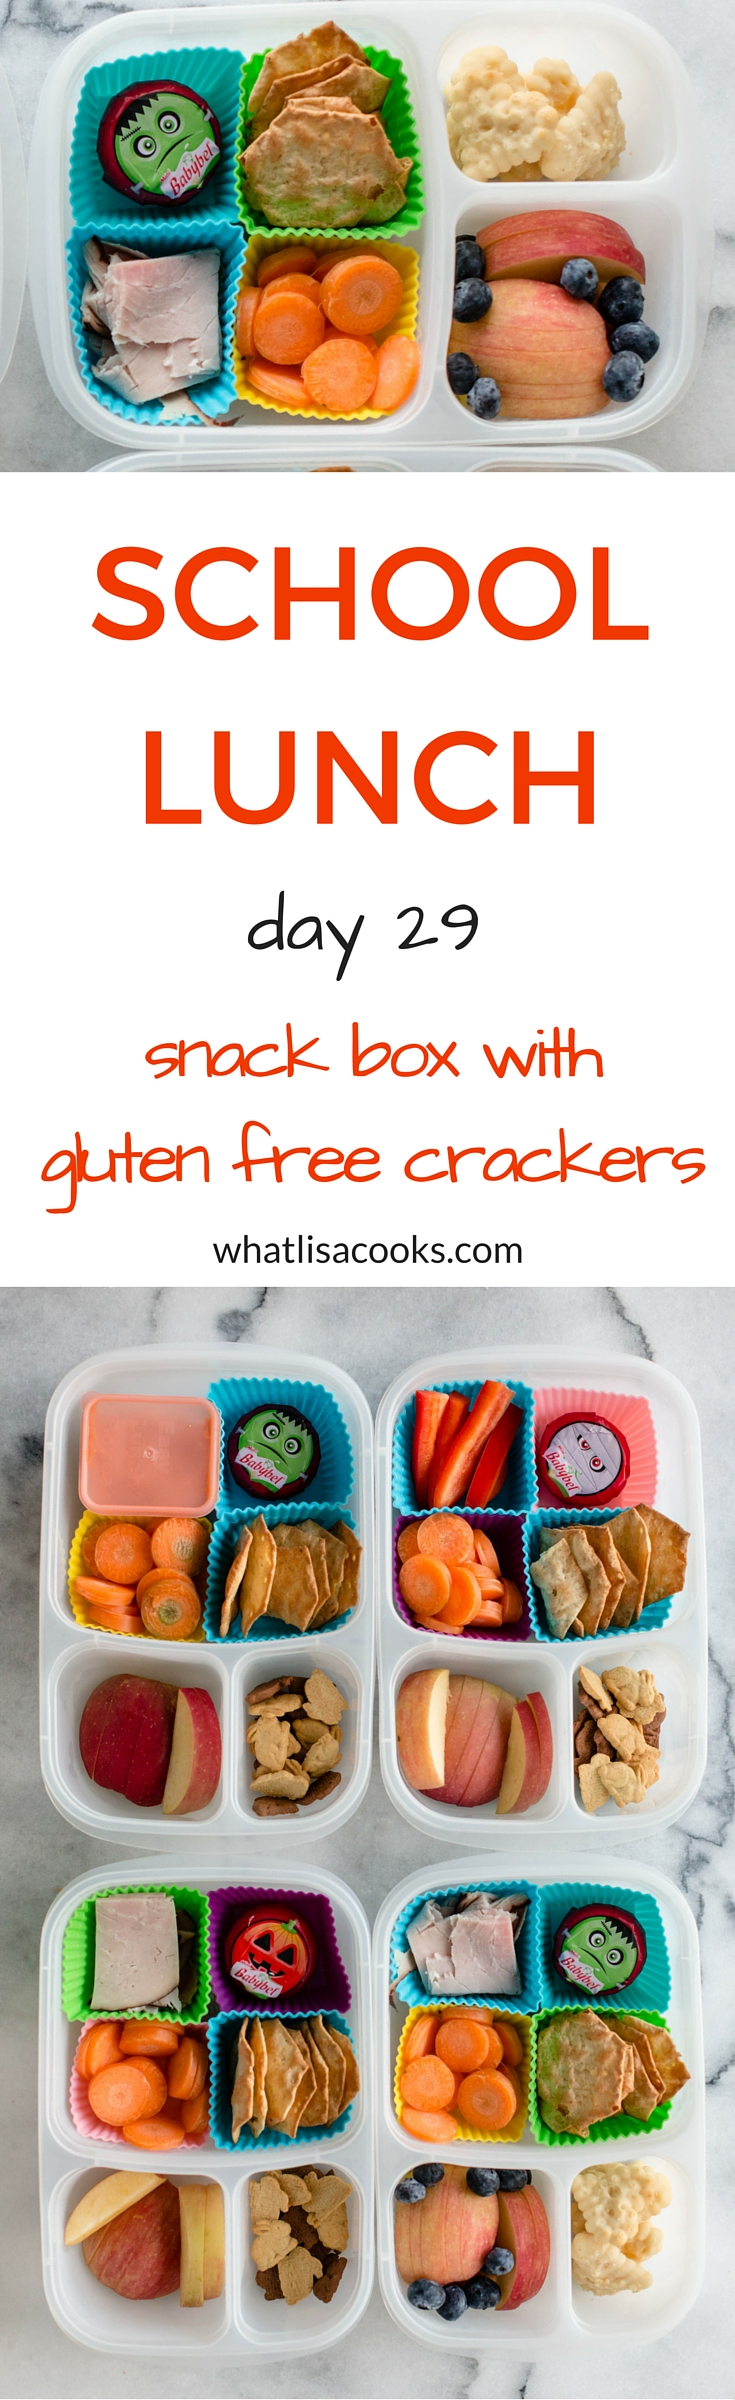 easy school lunch from whatlisacooks.com: snack box with gluten free crackers